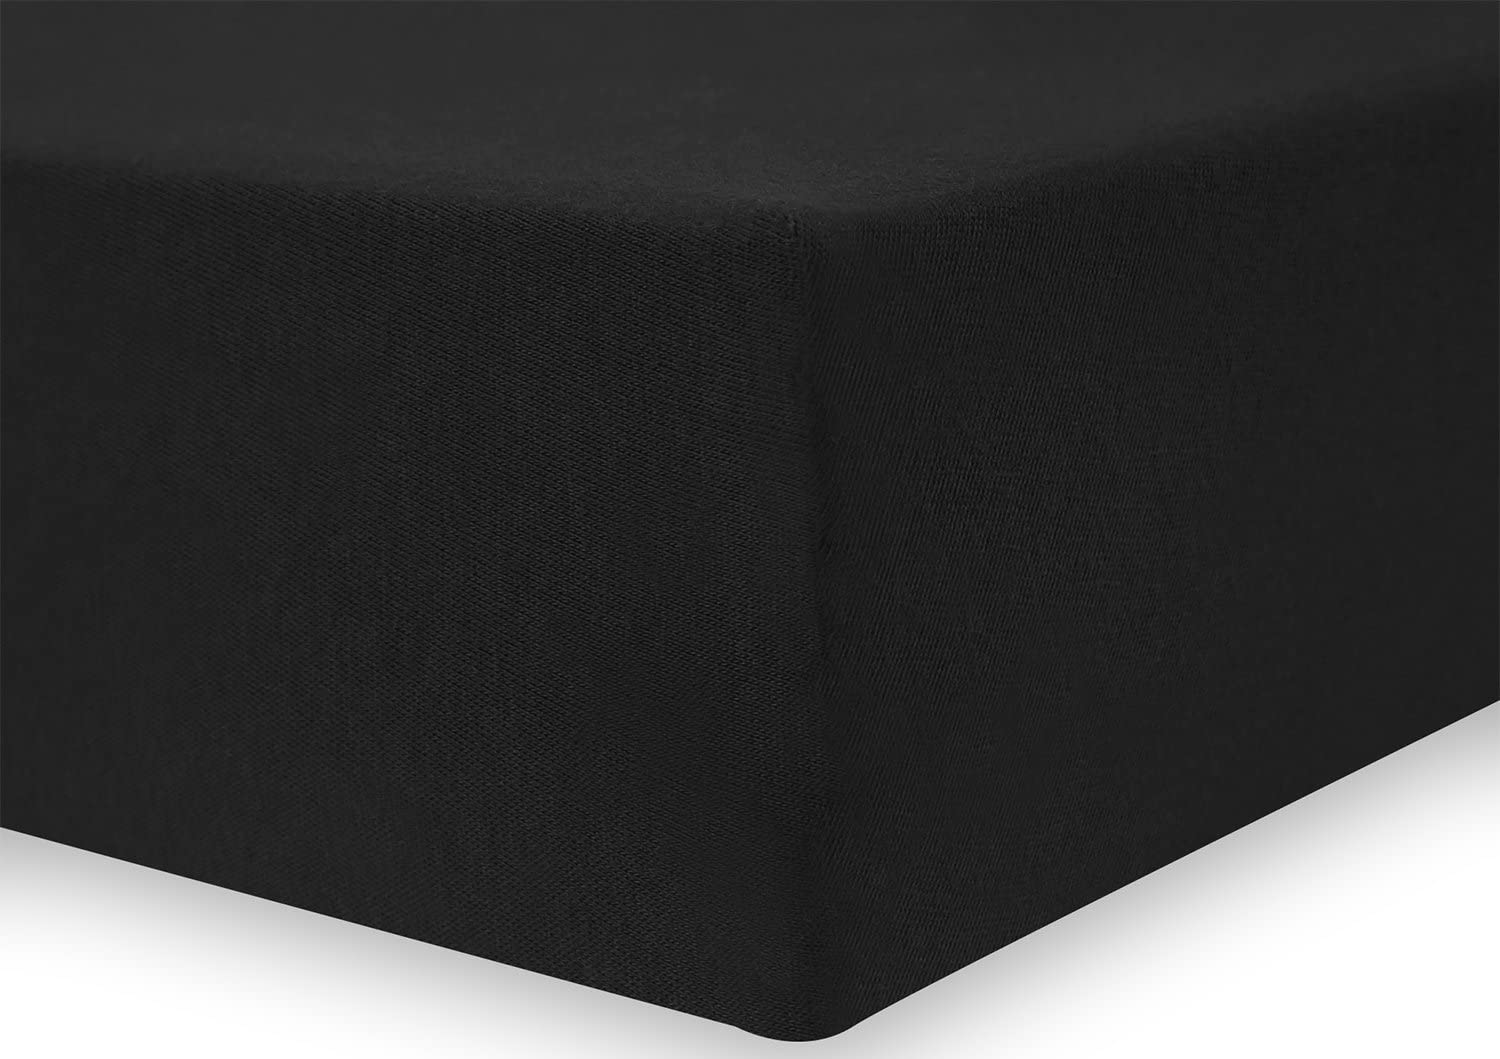 80x200-90x200 cm Black DecoKing Fitted Sheet UK Single 100/% Supreme Quality Cotton Jersey Boxspring Nephrite Collection